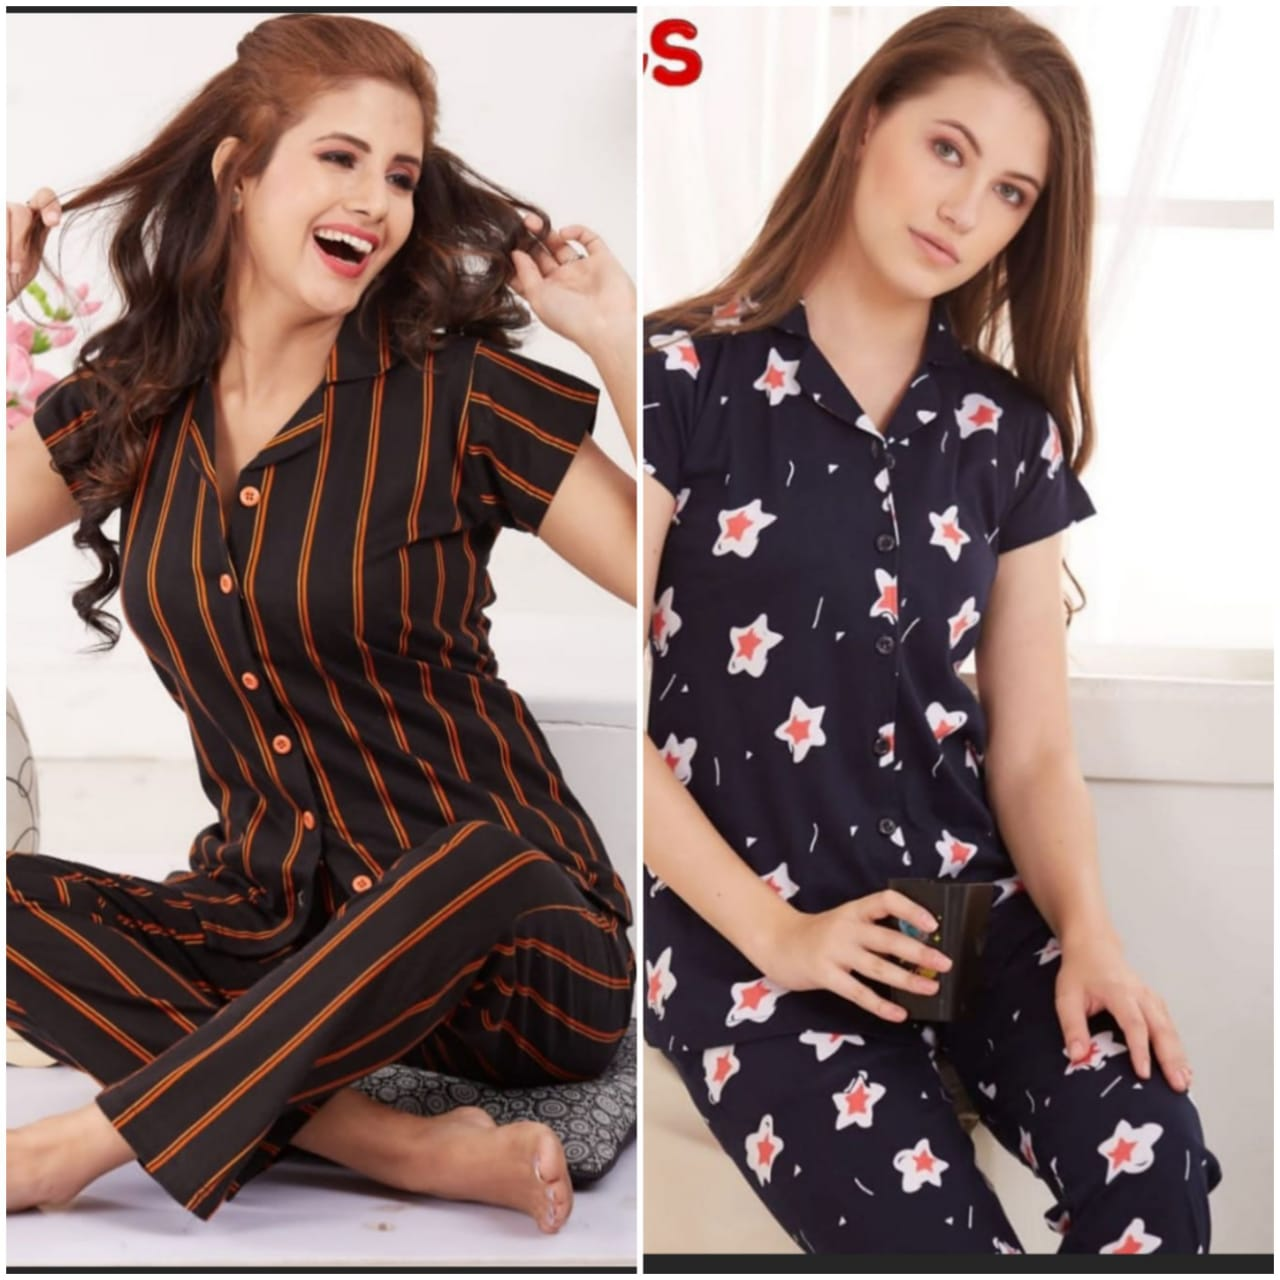 Night Wear for 399/- - hsf56